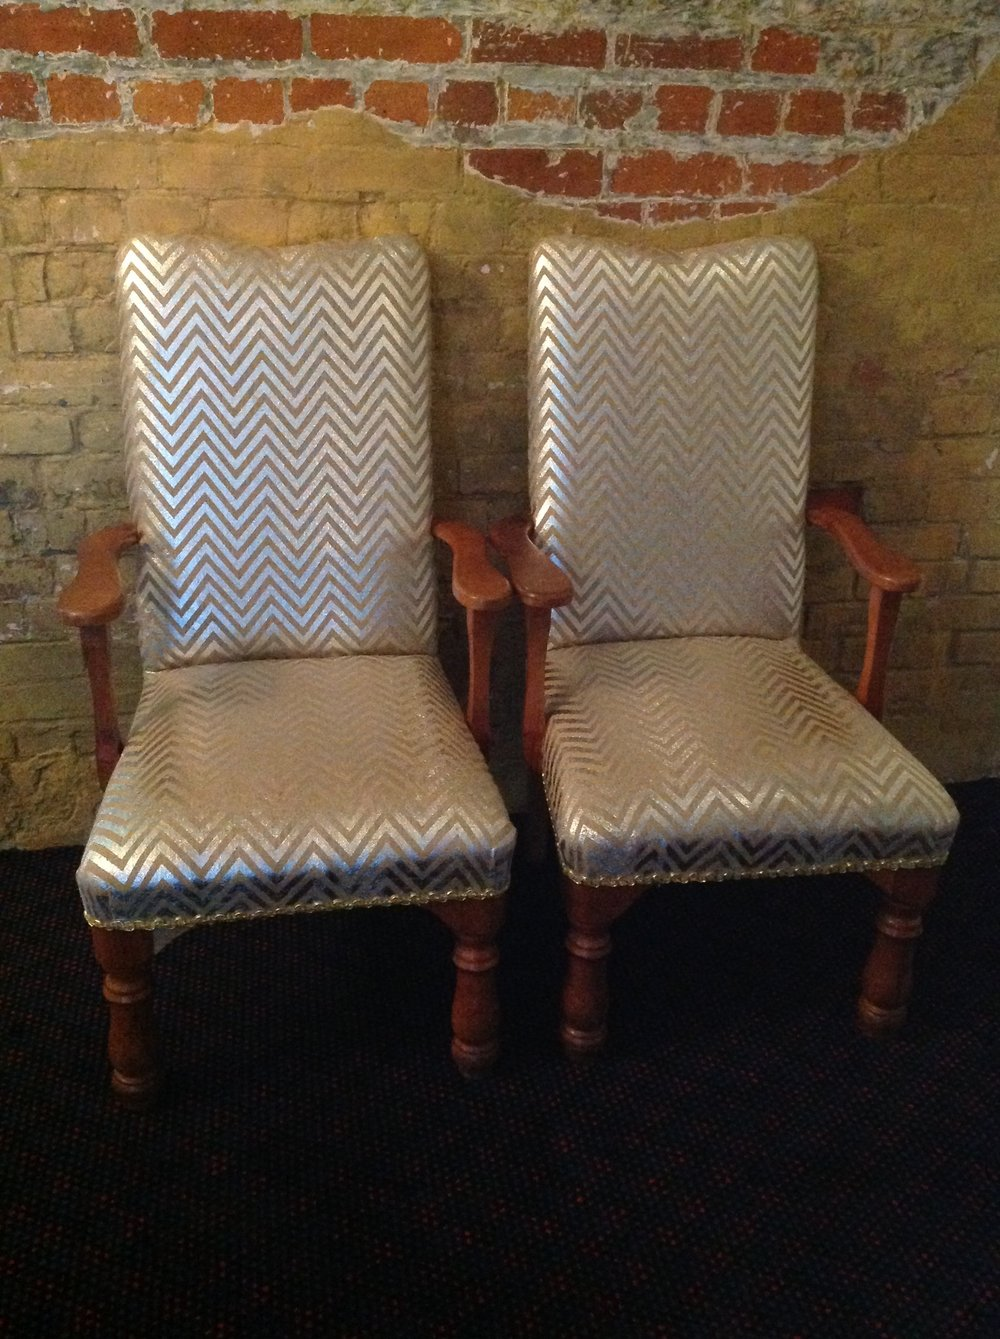 King & Queen Chair - $50.00 Pair